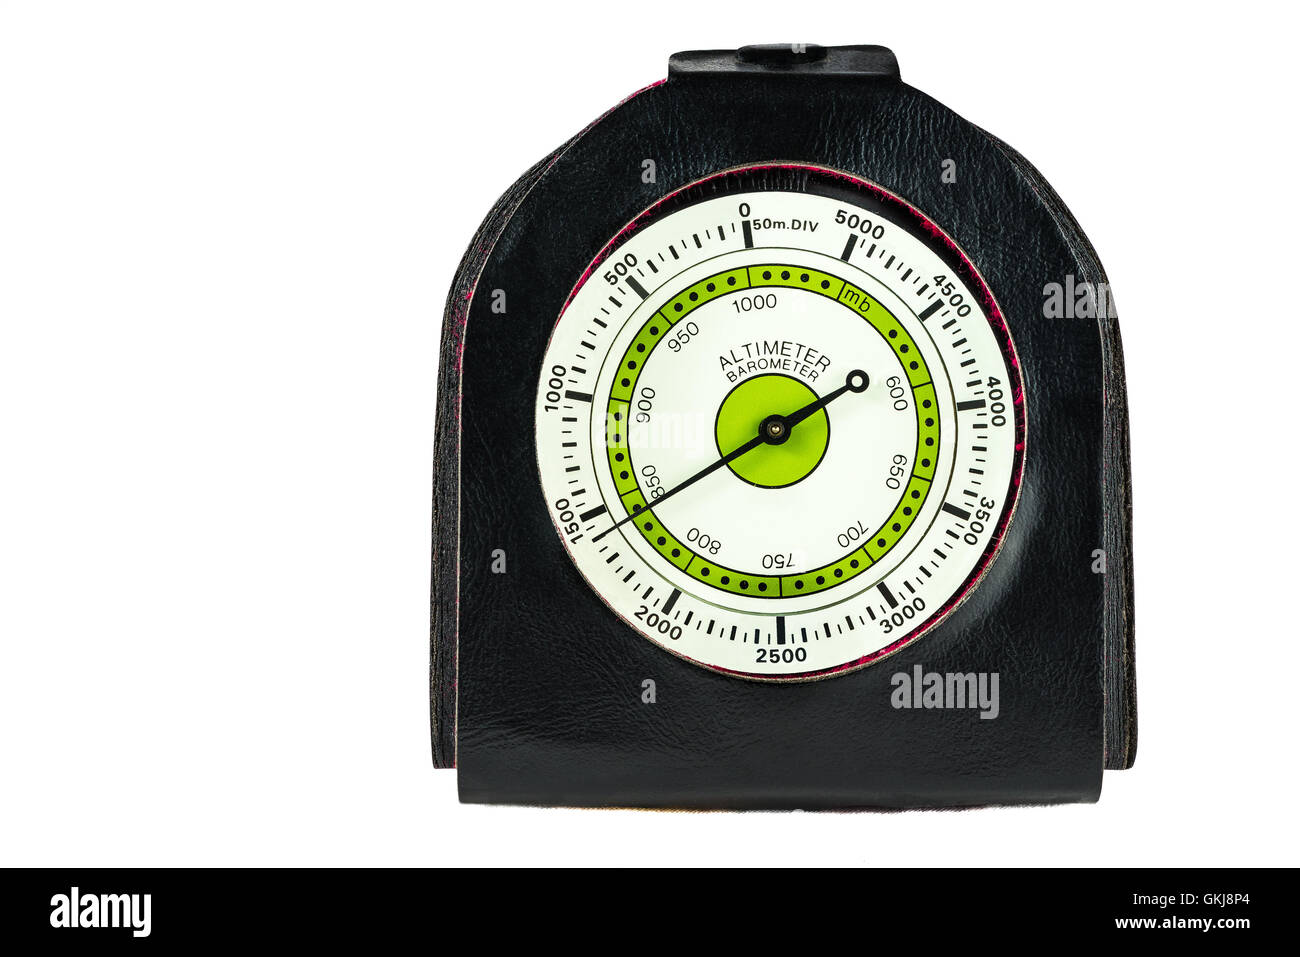 Altimeter and barometer for hiking on white background - Stock Image